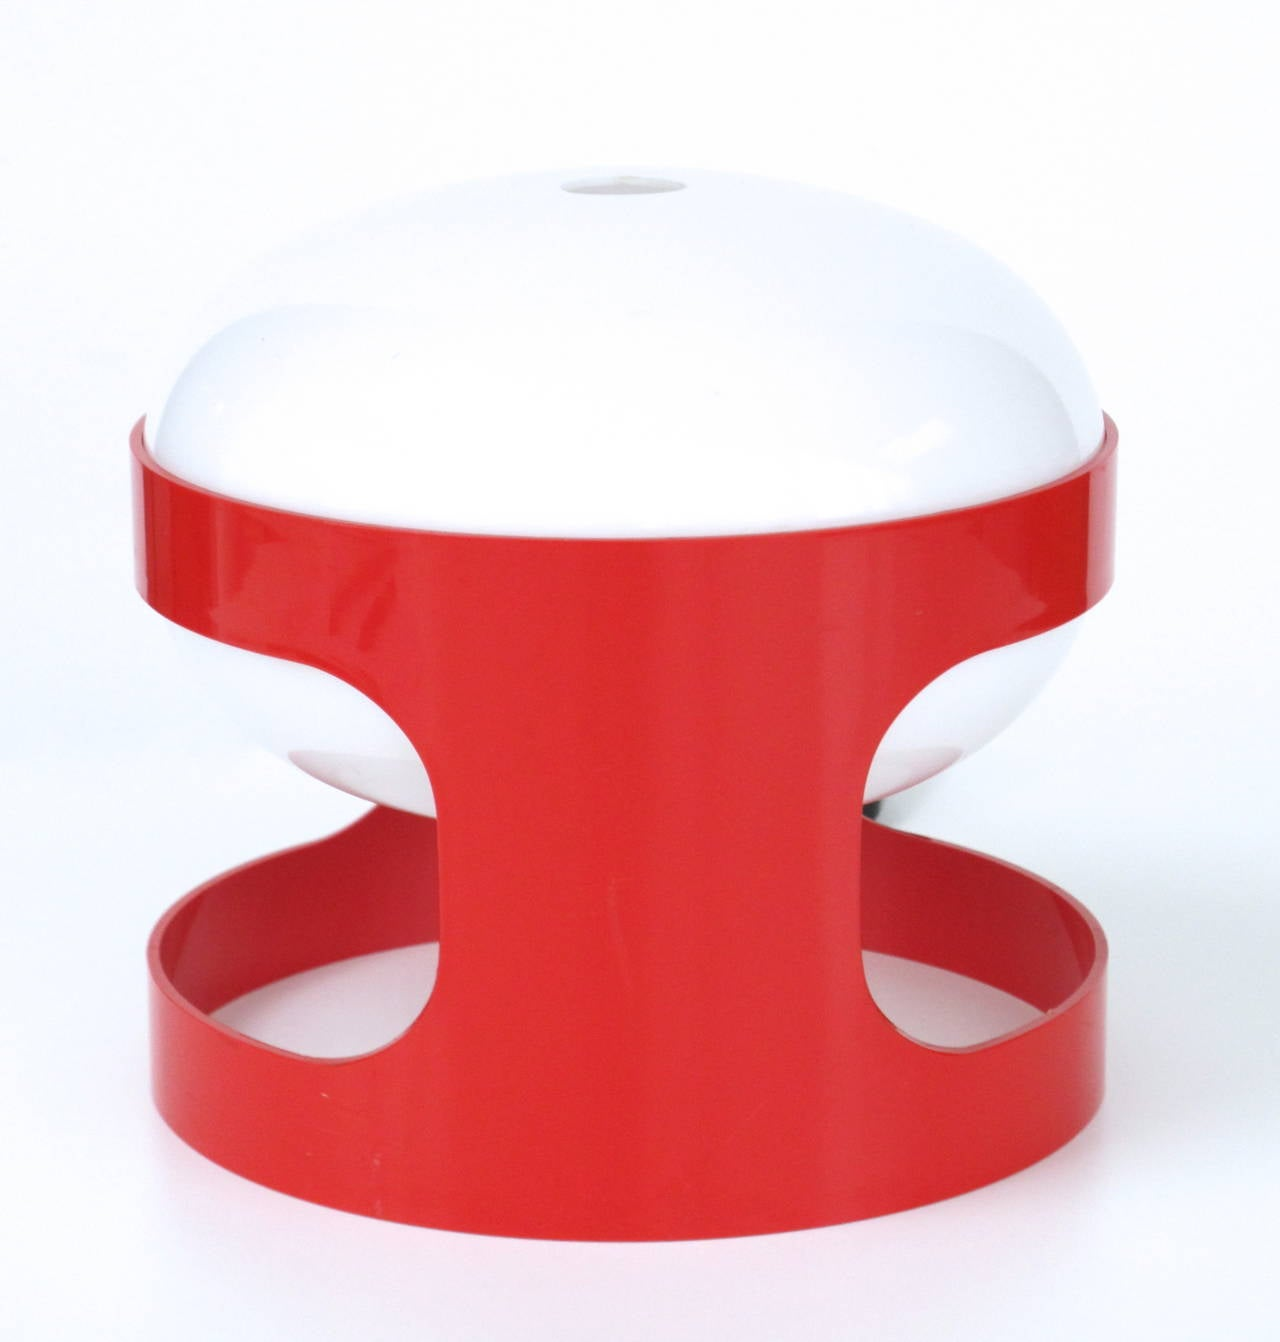 Space Age Furniture Joe Colombo Kd27 Space Age Table Lamp For Kartell For Sale At 1stdibs